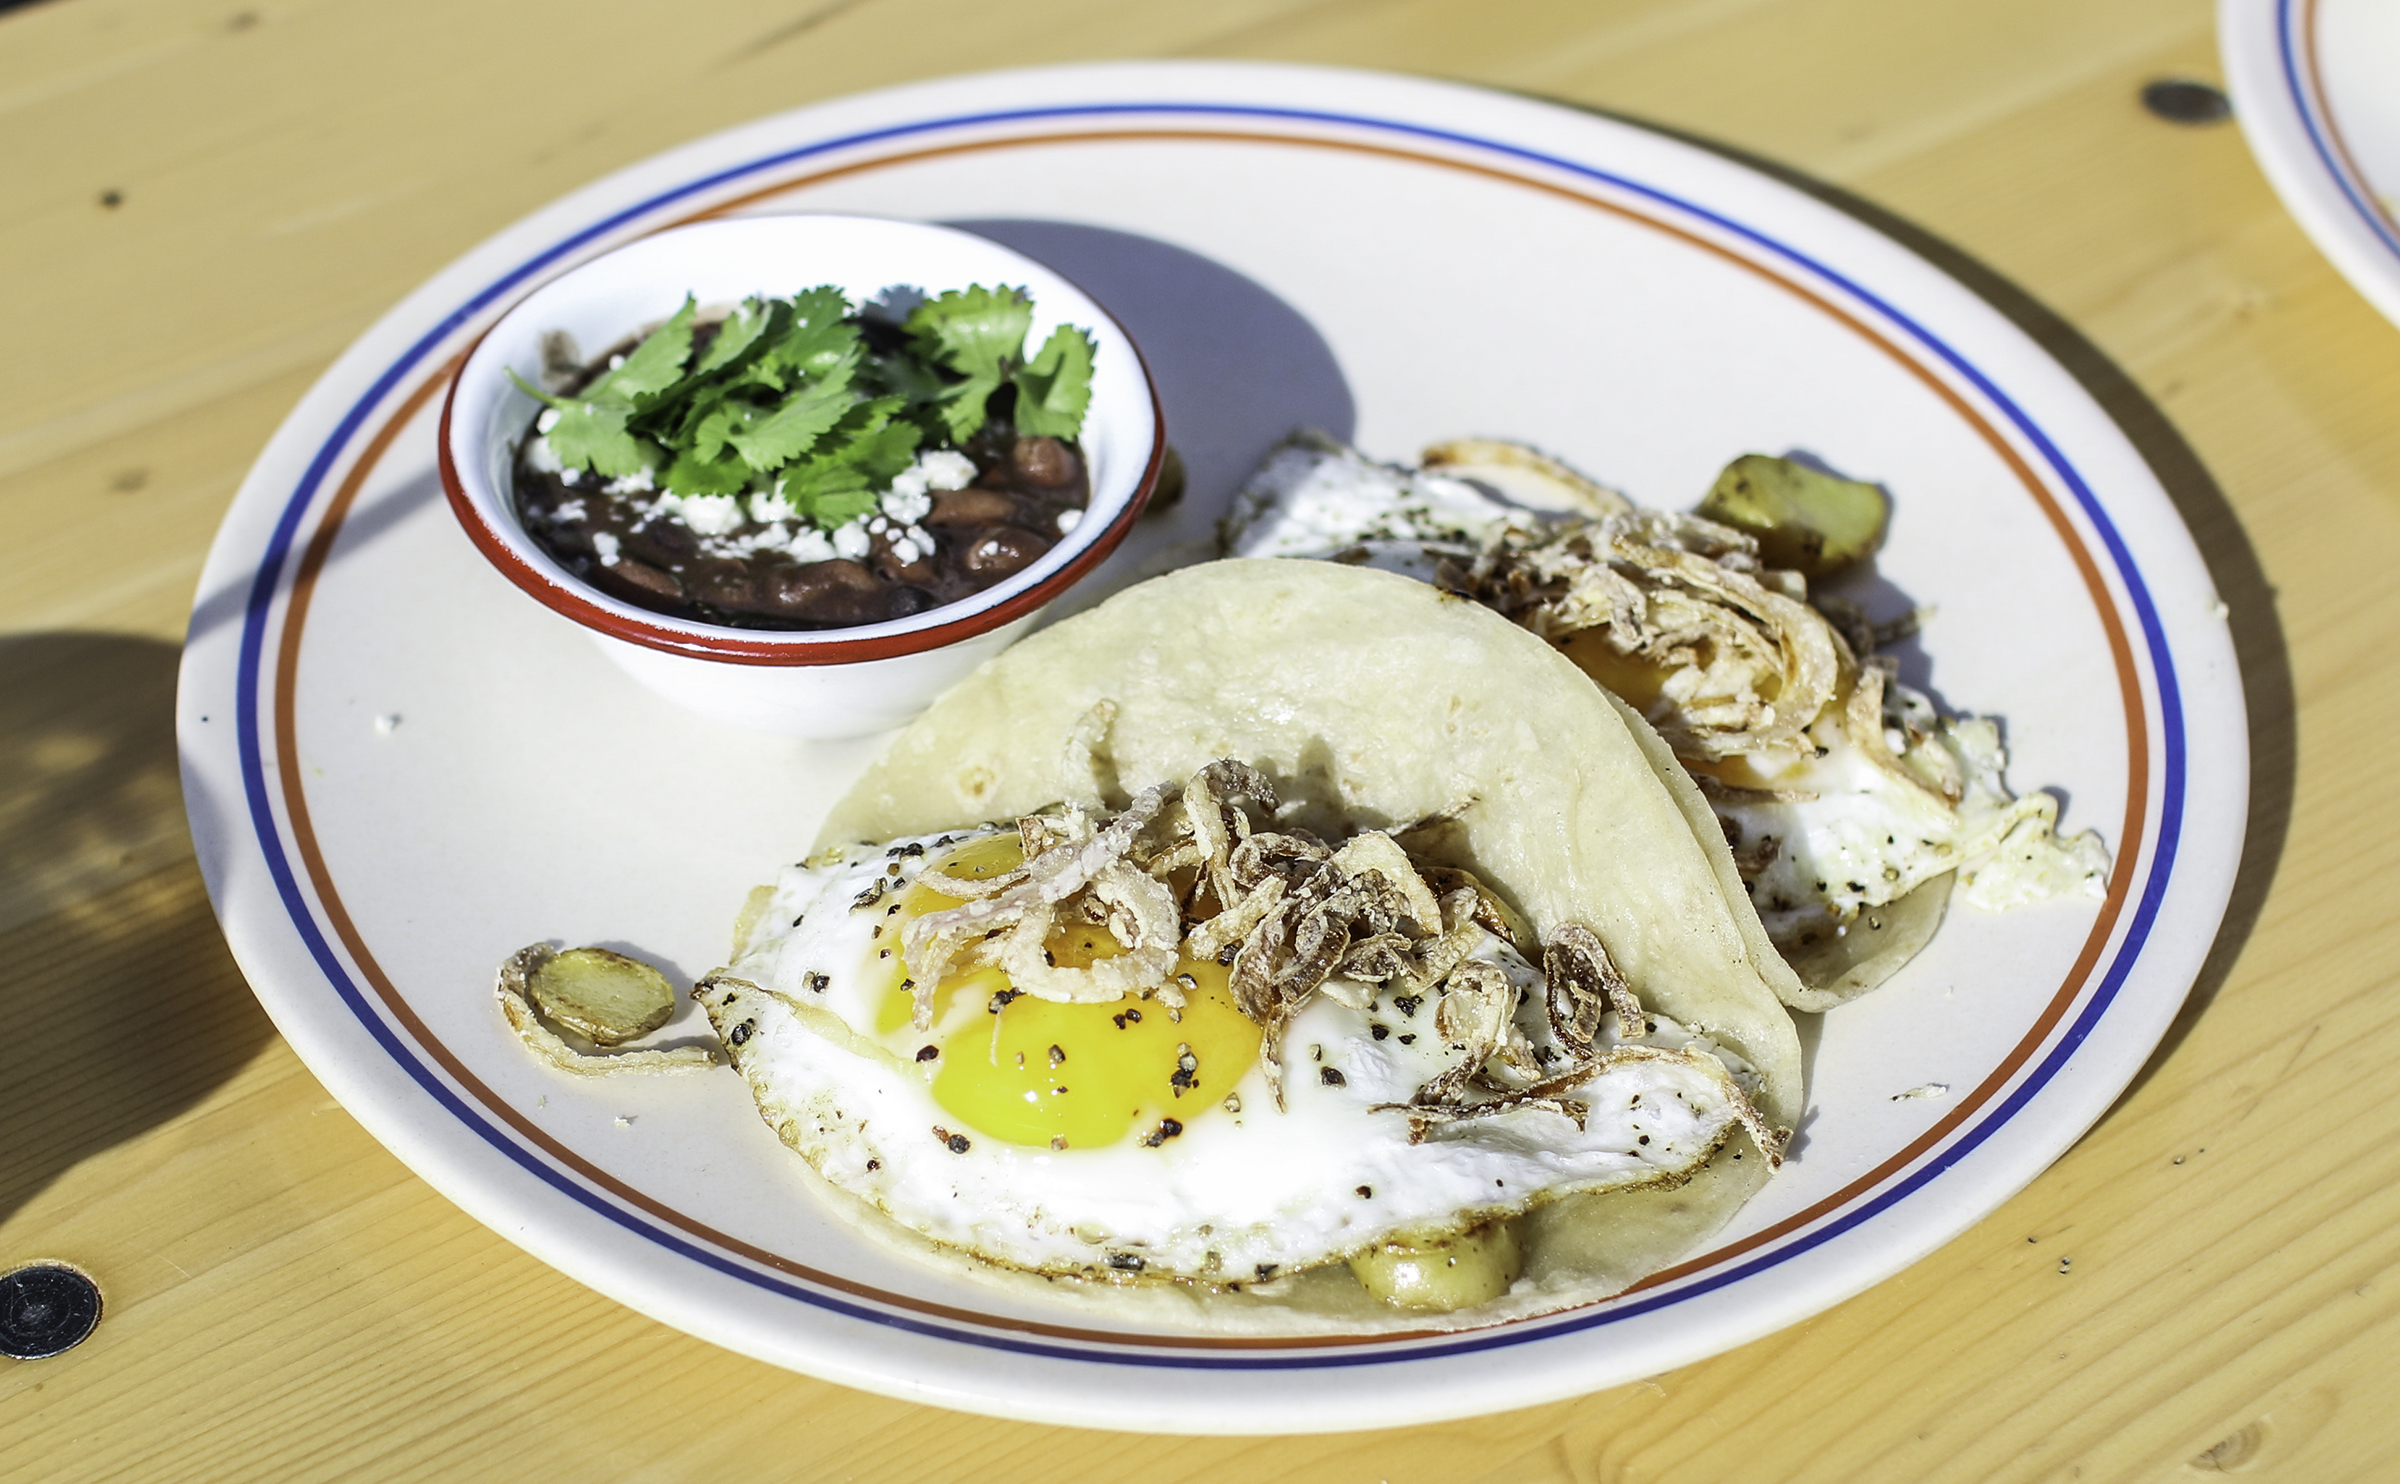 Boardwalk Clasico Tacos: Fried Egg, Fingerling Potatoes, Smashed Avocado, Crispy Shallot served on Housemade Flour Tortillas